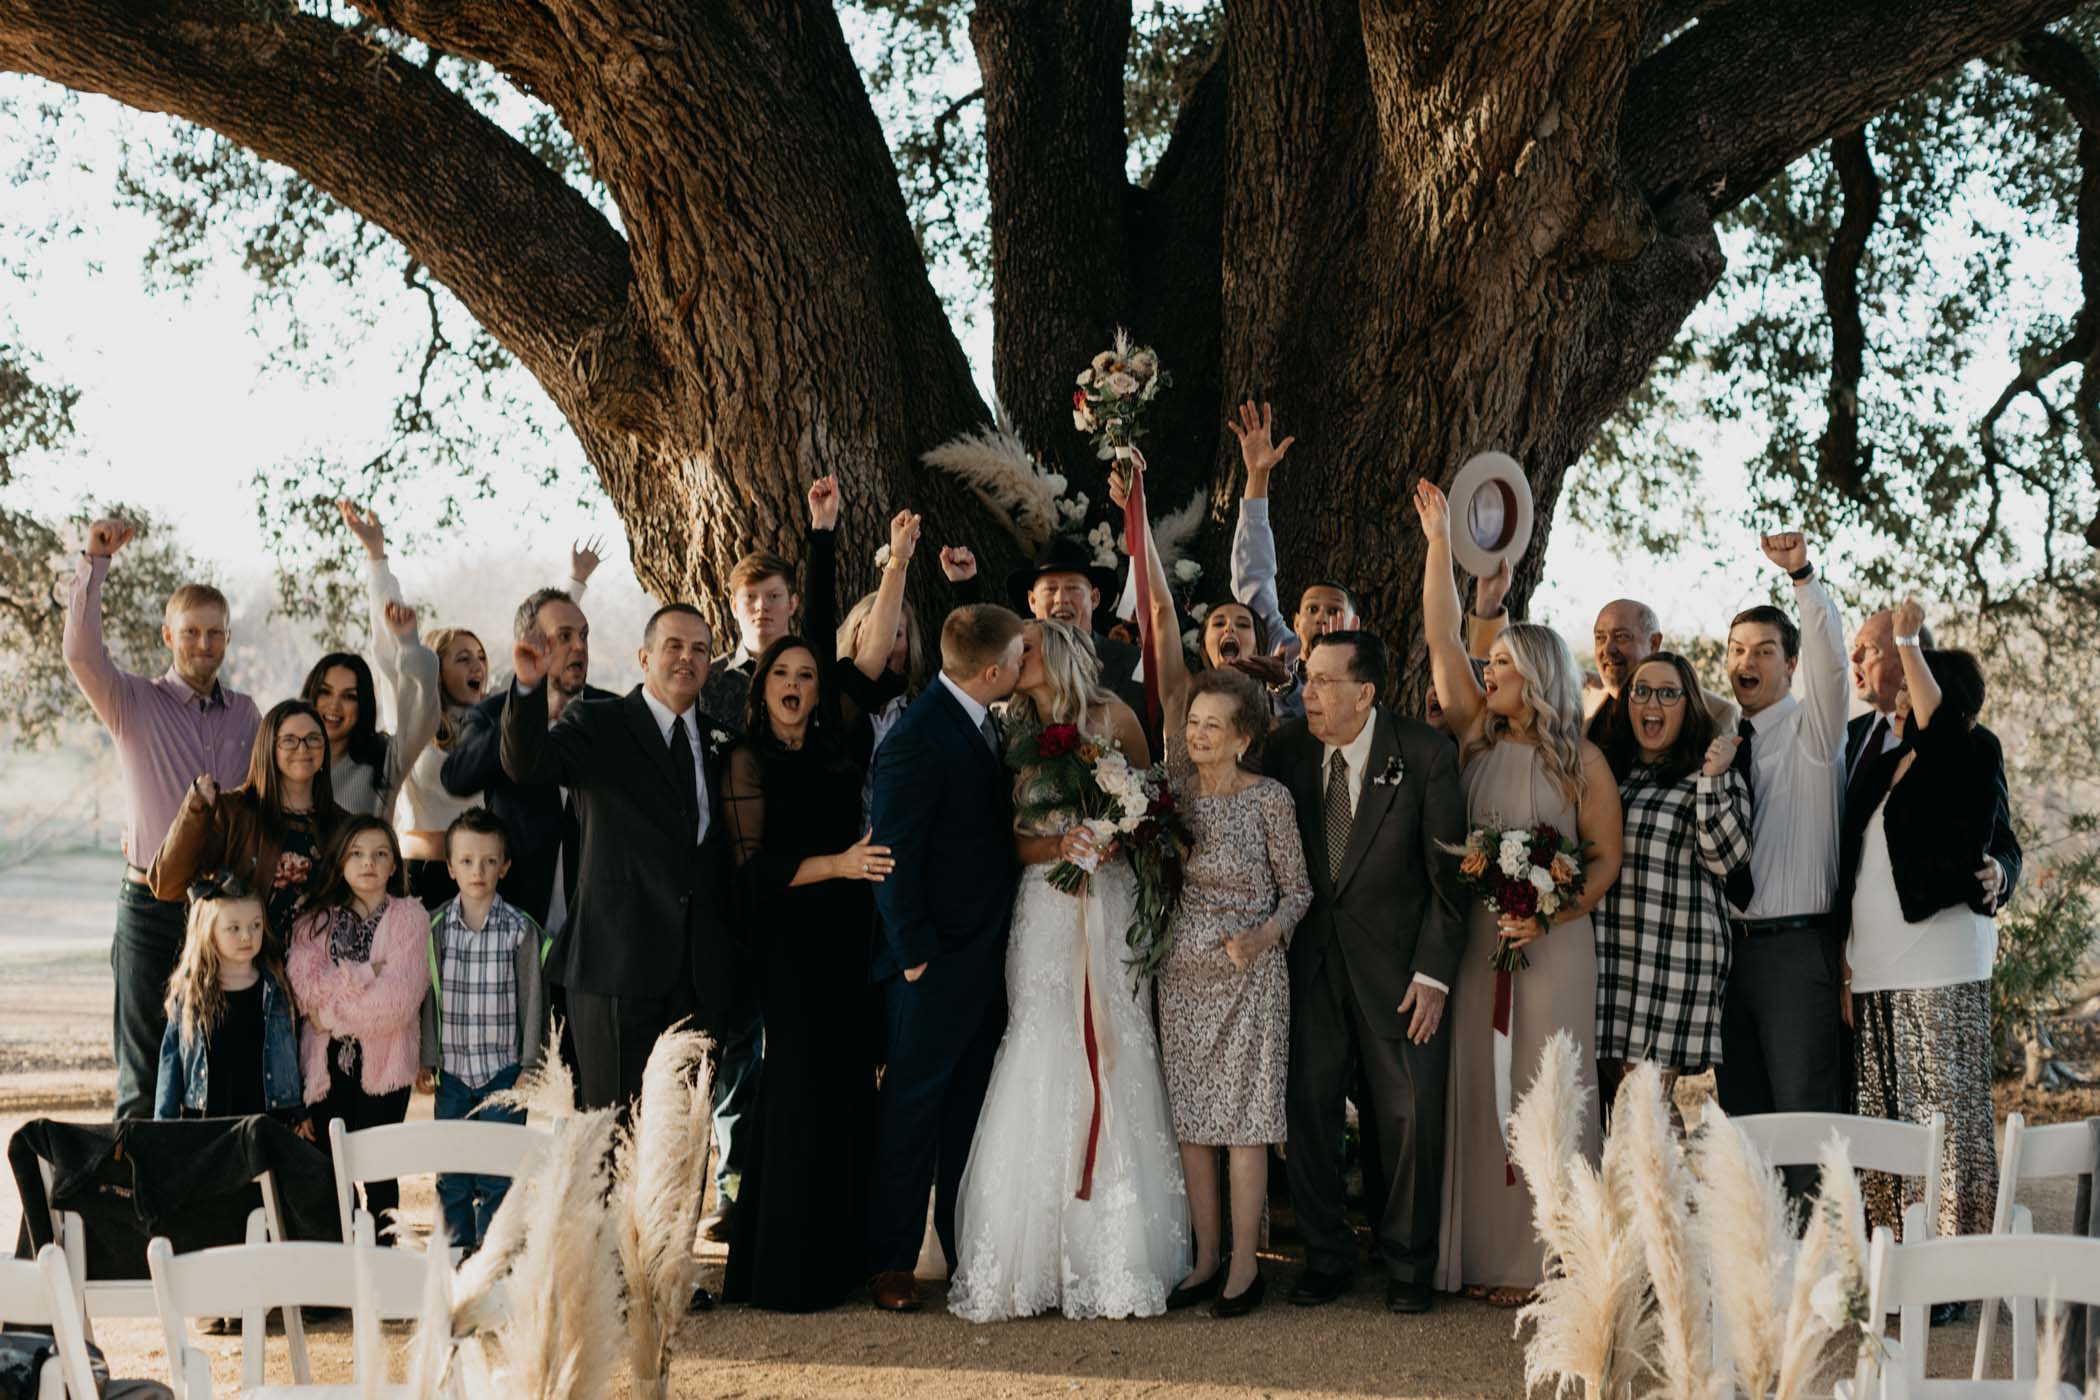 married couples family cheering as bride and groom kiss at their wedding day